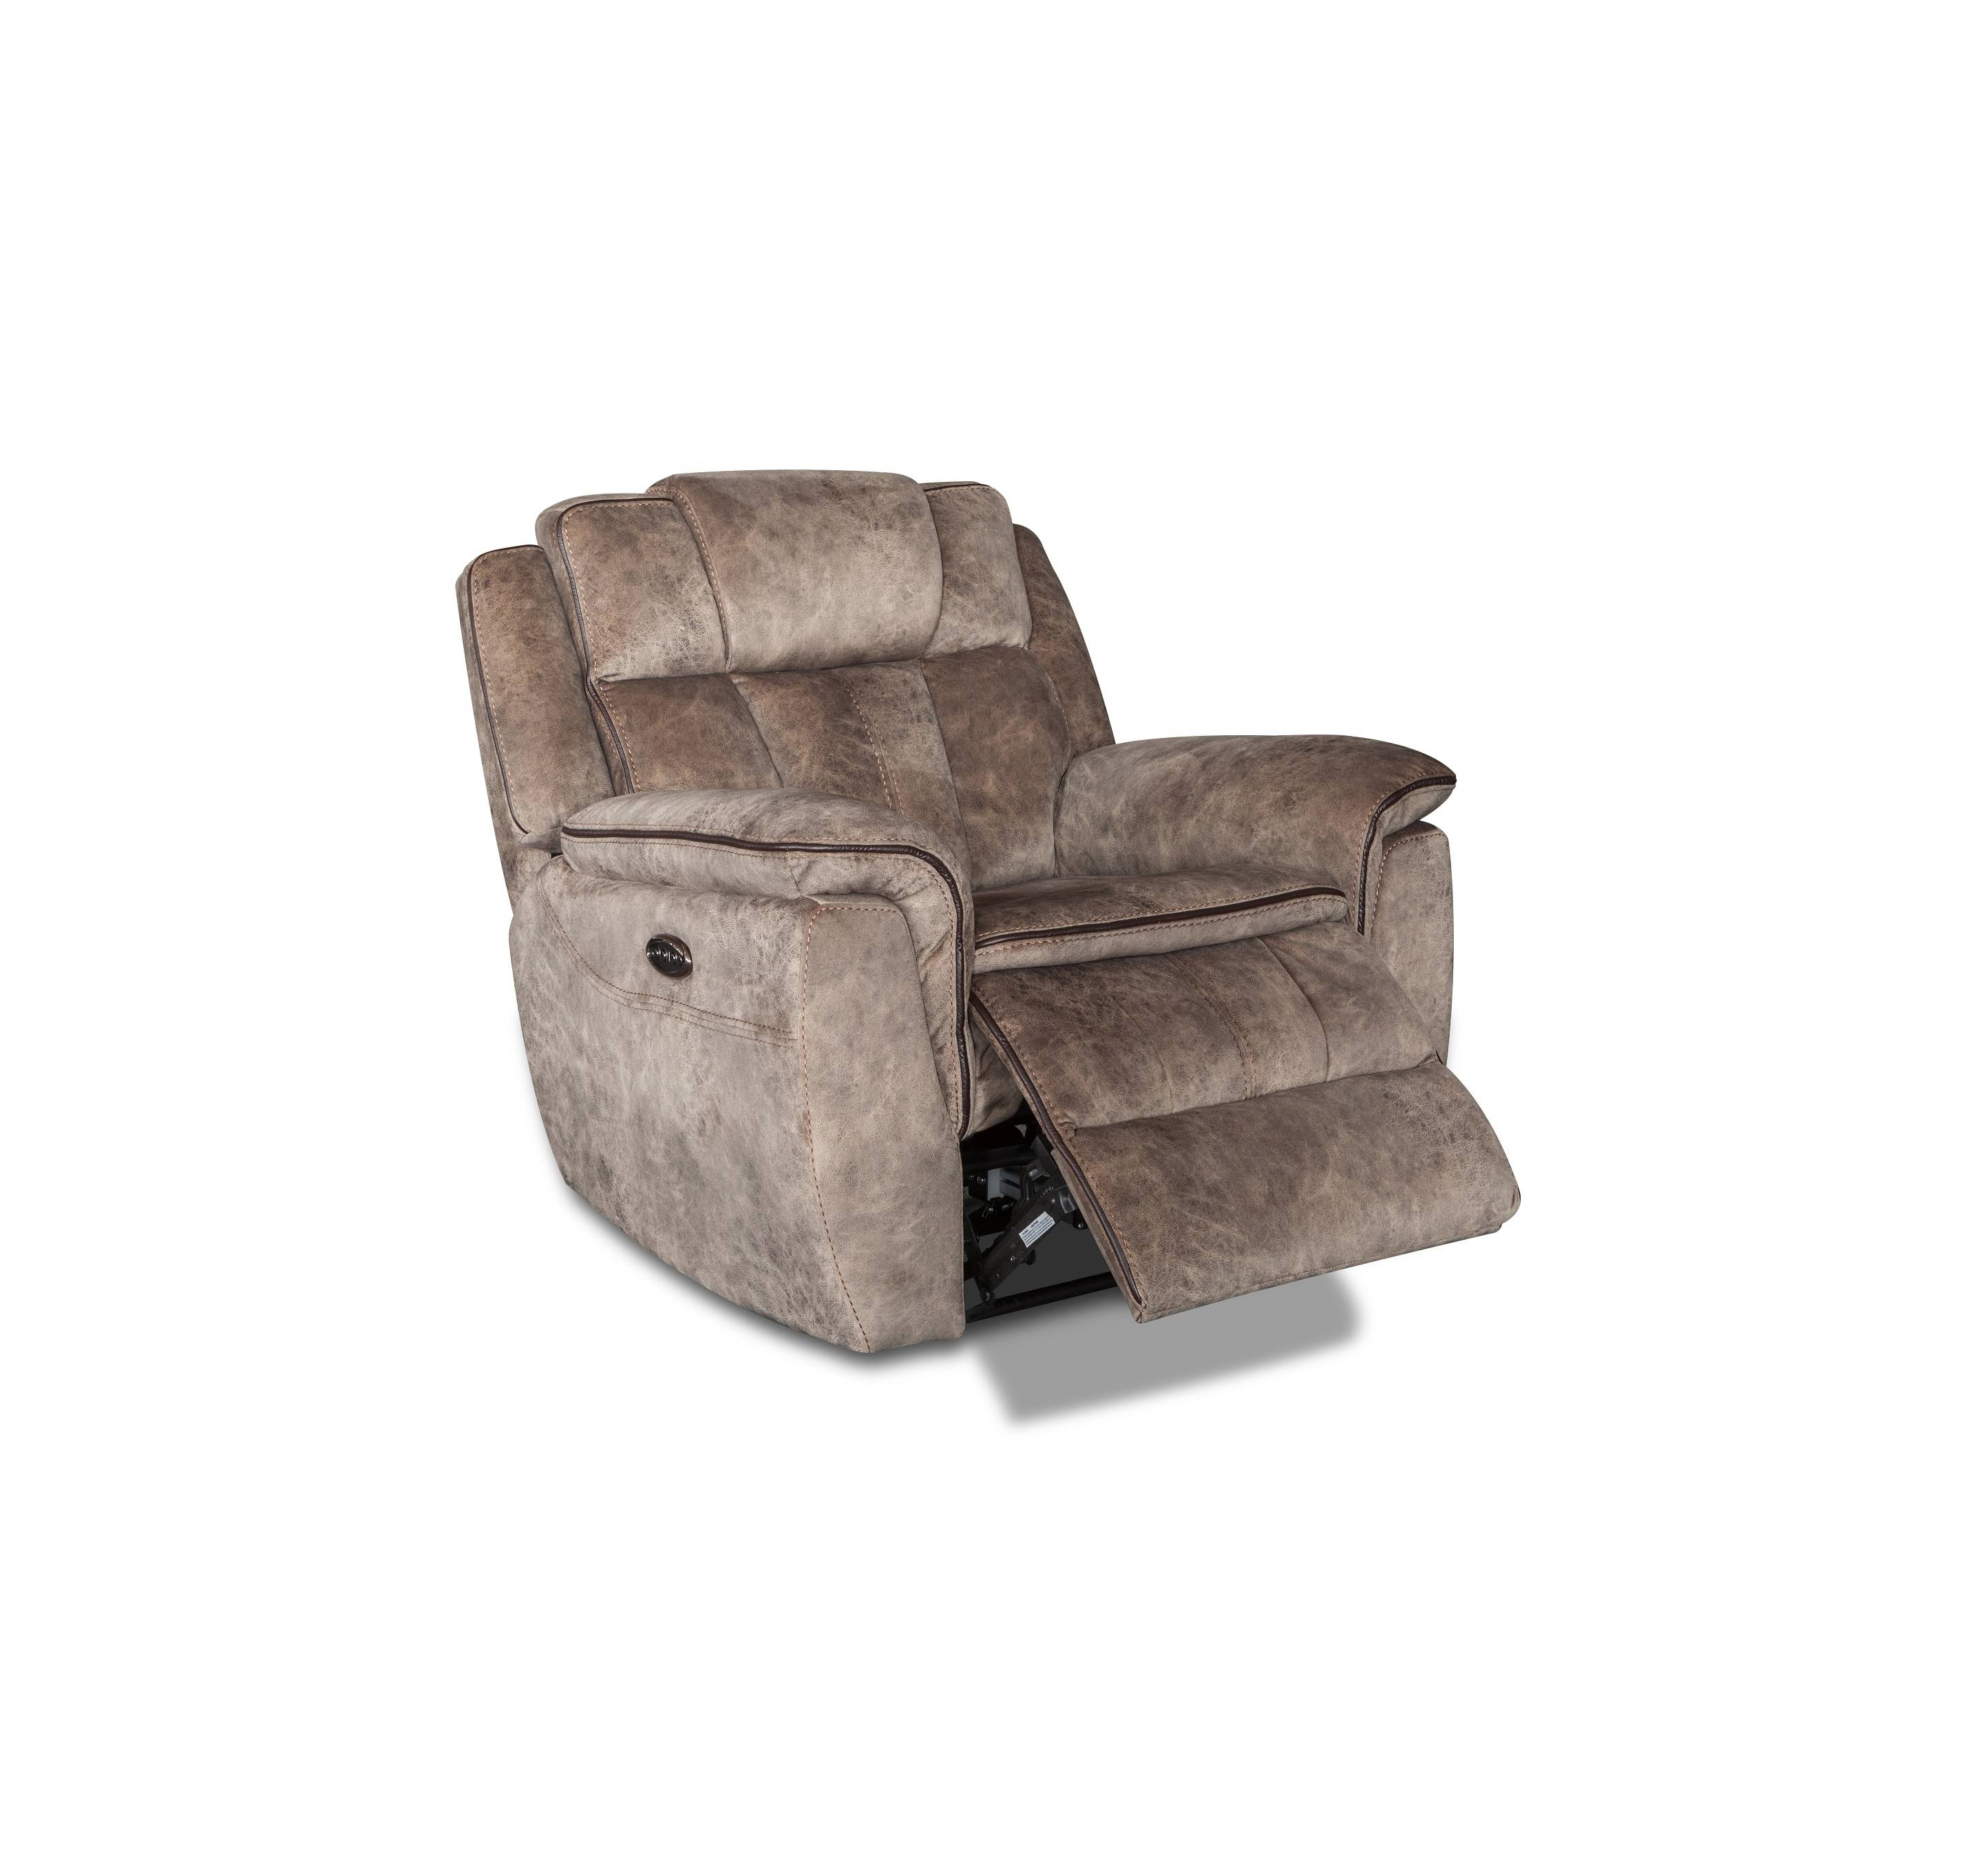 American style home furniture zero gravity lift chair recliner